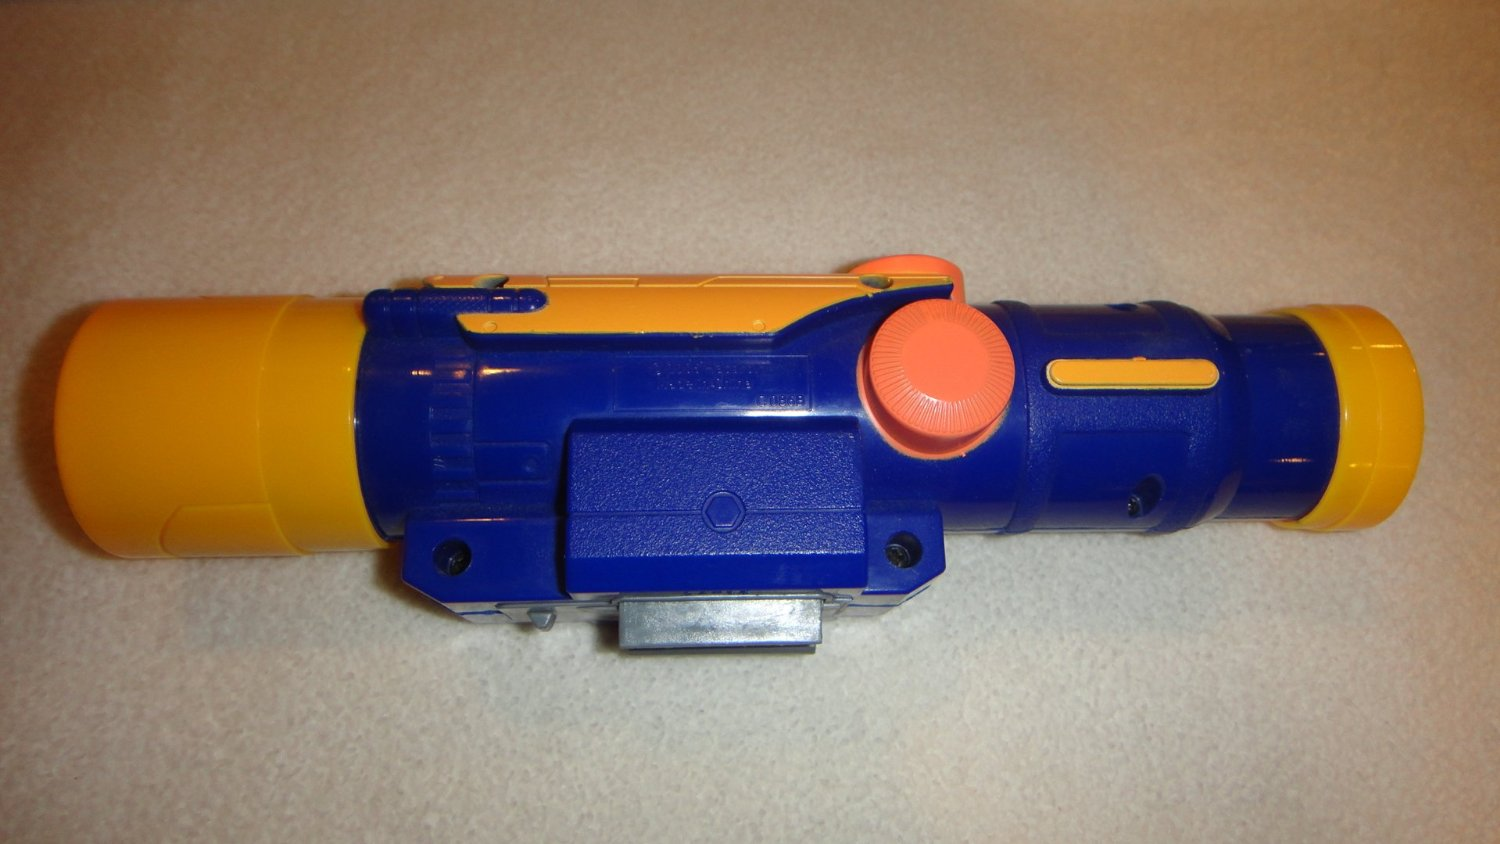 NERF LONGSHOT CS-6 BLUE AND YELLOW SCOPE, NERF SCOPE ONLY NO GUN